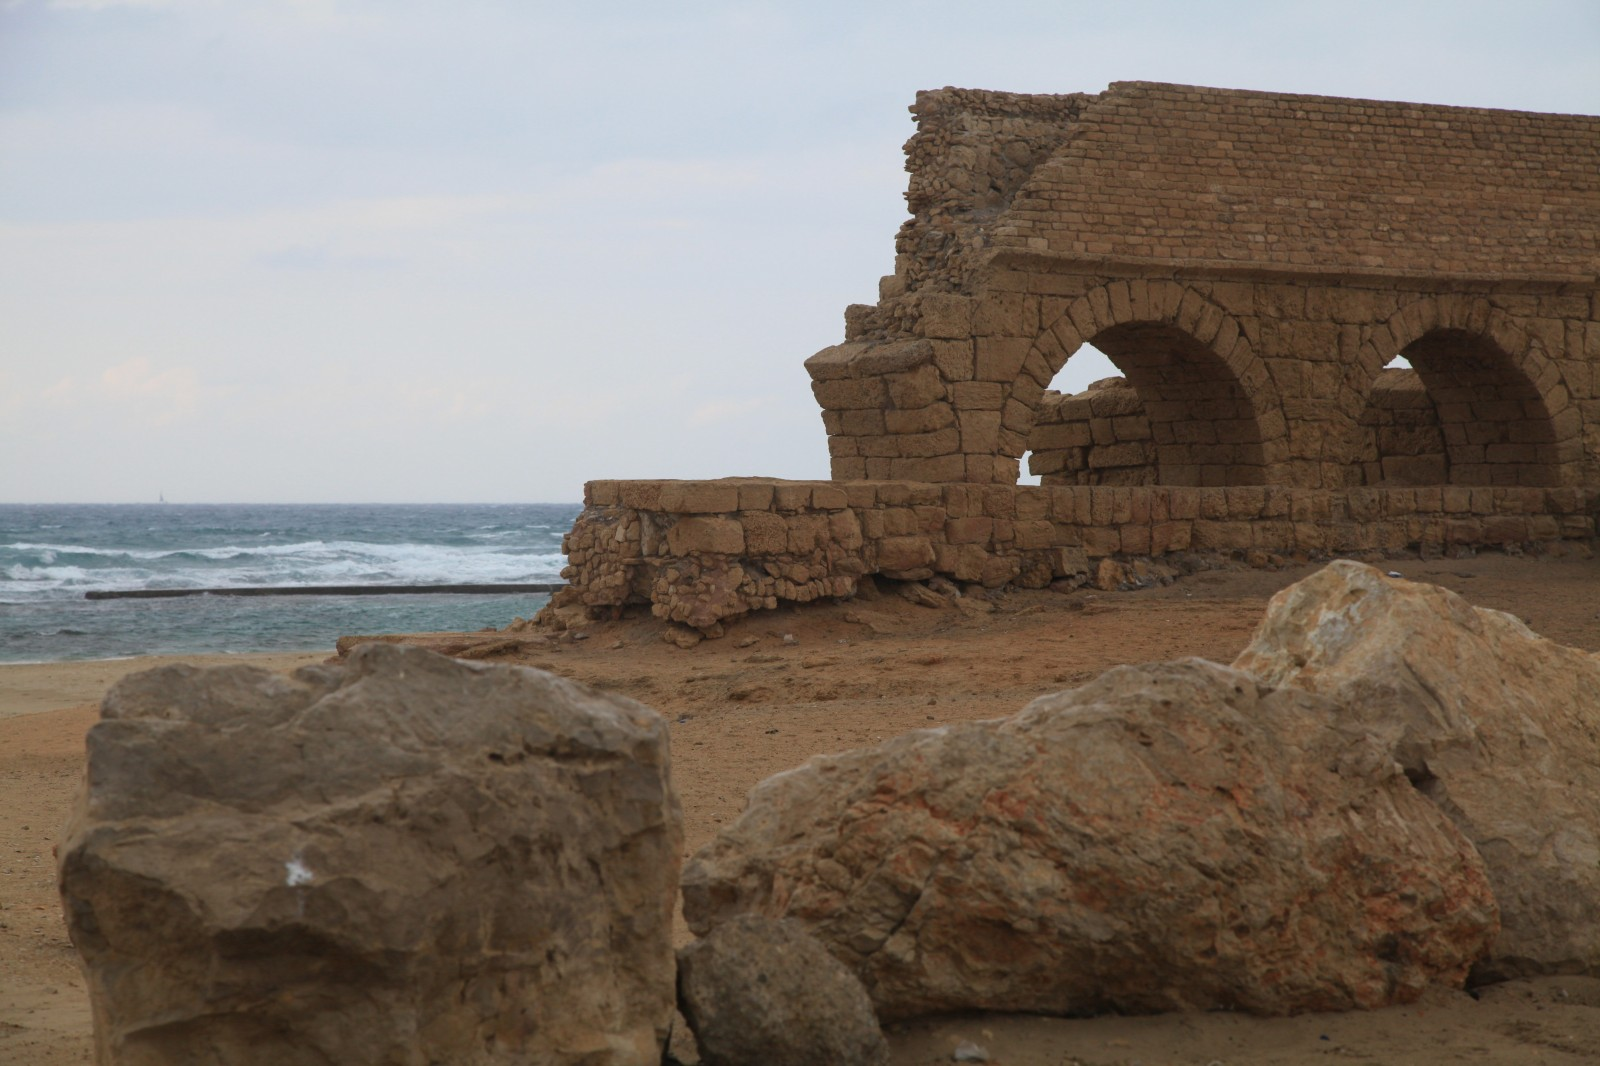 An ingenious piece of Roman technology - the aqueduct